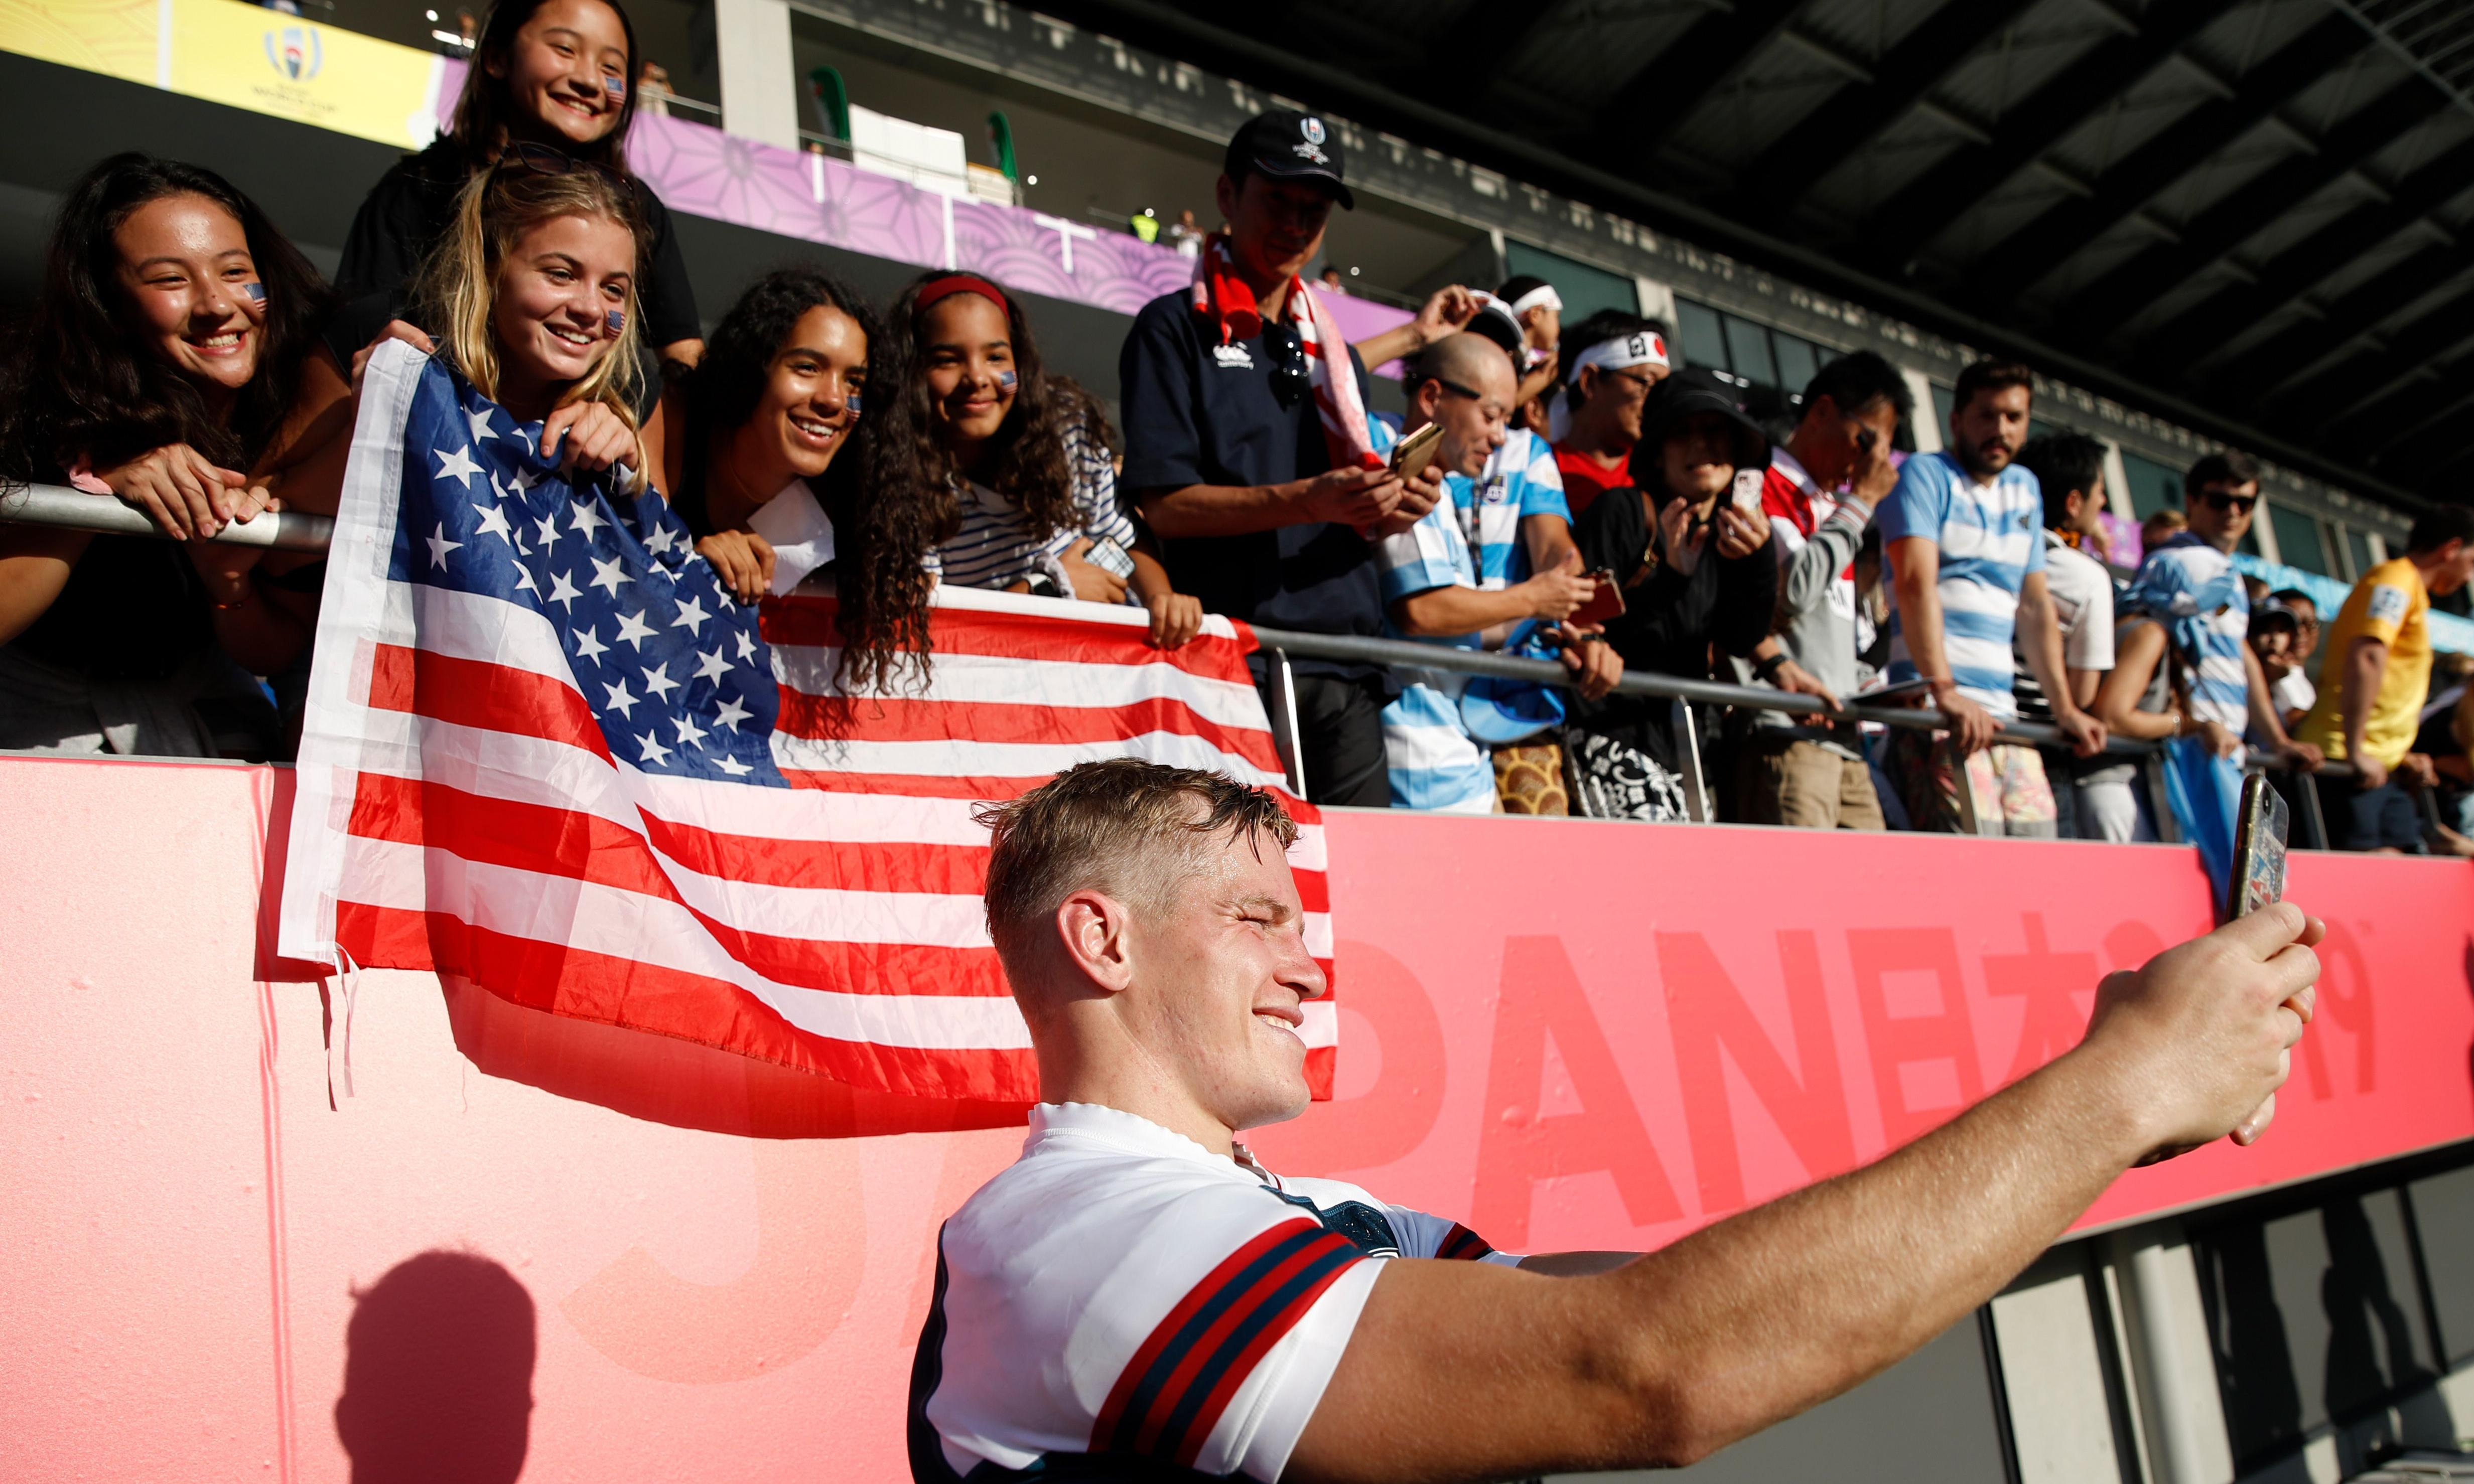 We fell short this time,but a USA World Cup could send rugby skywards